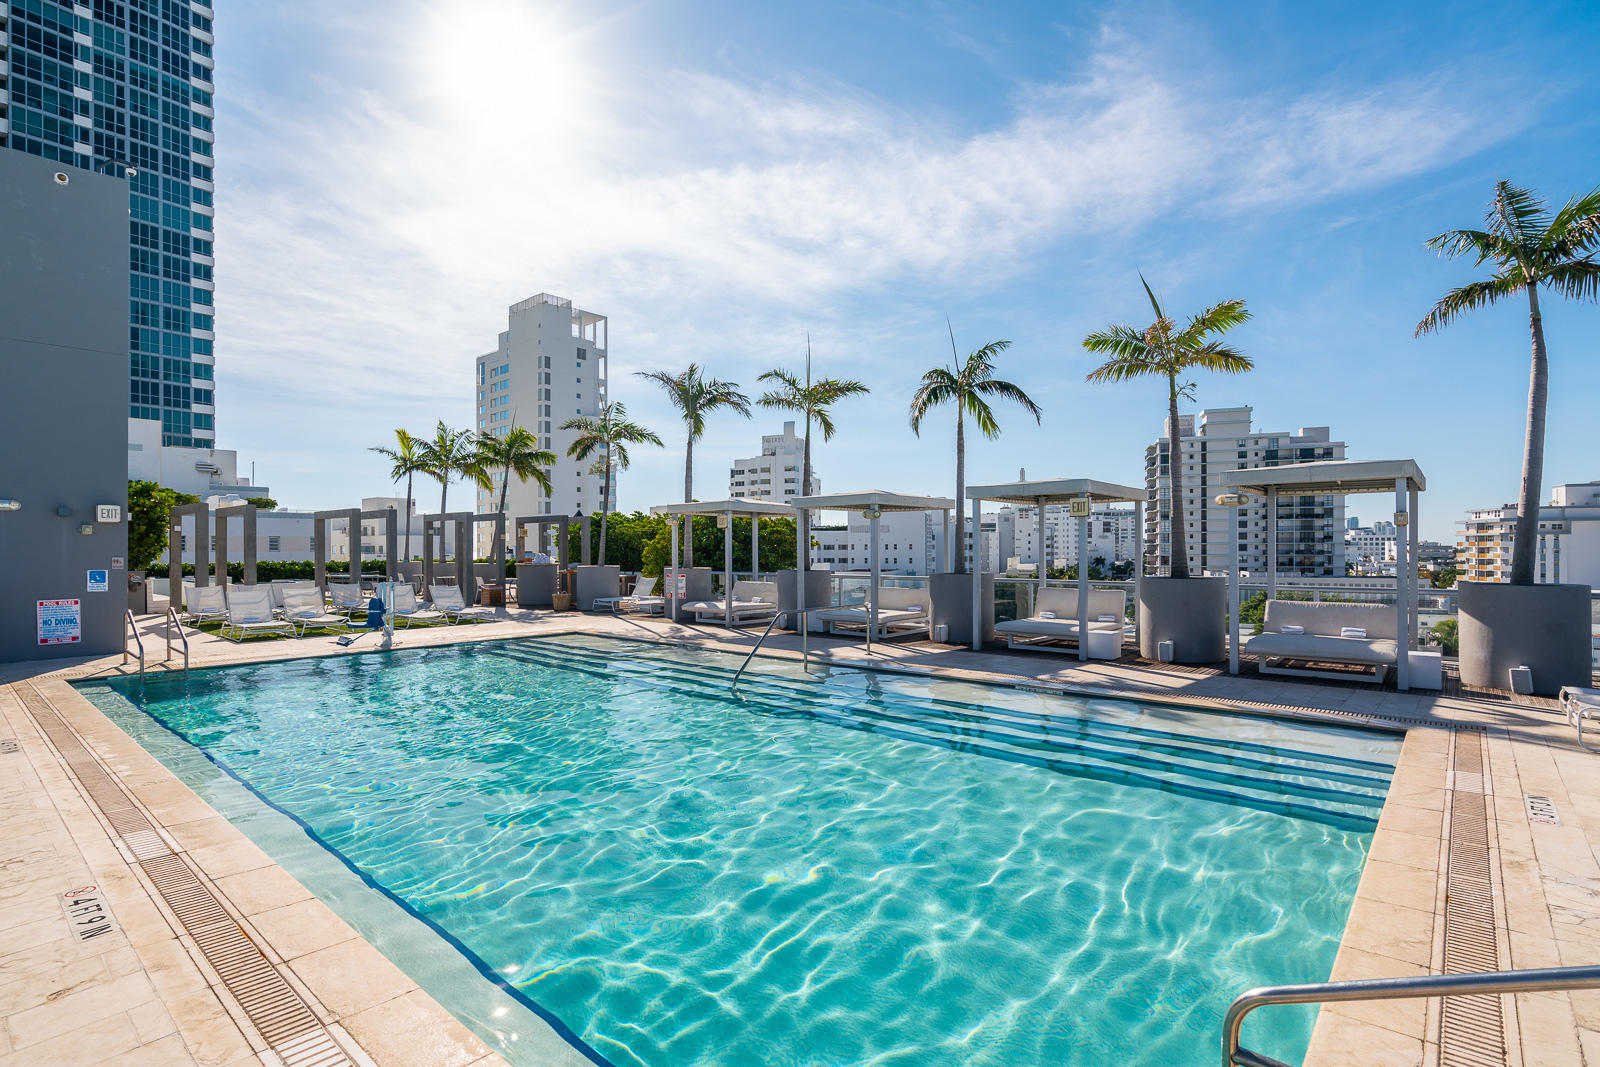 cabanas and lounge chairs at rooftop pool